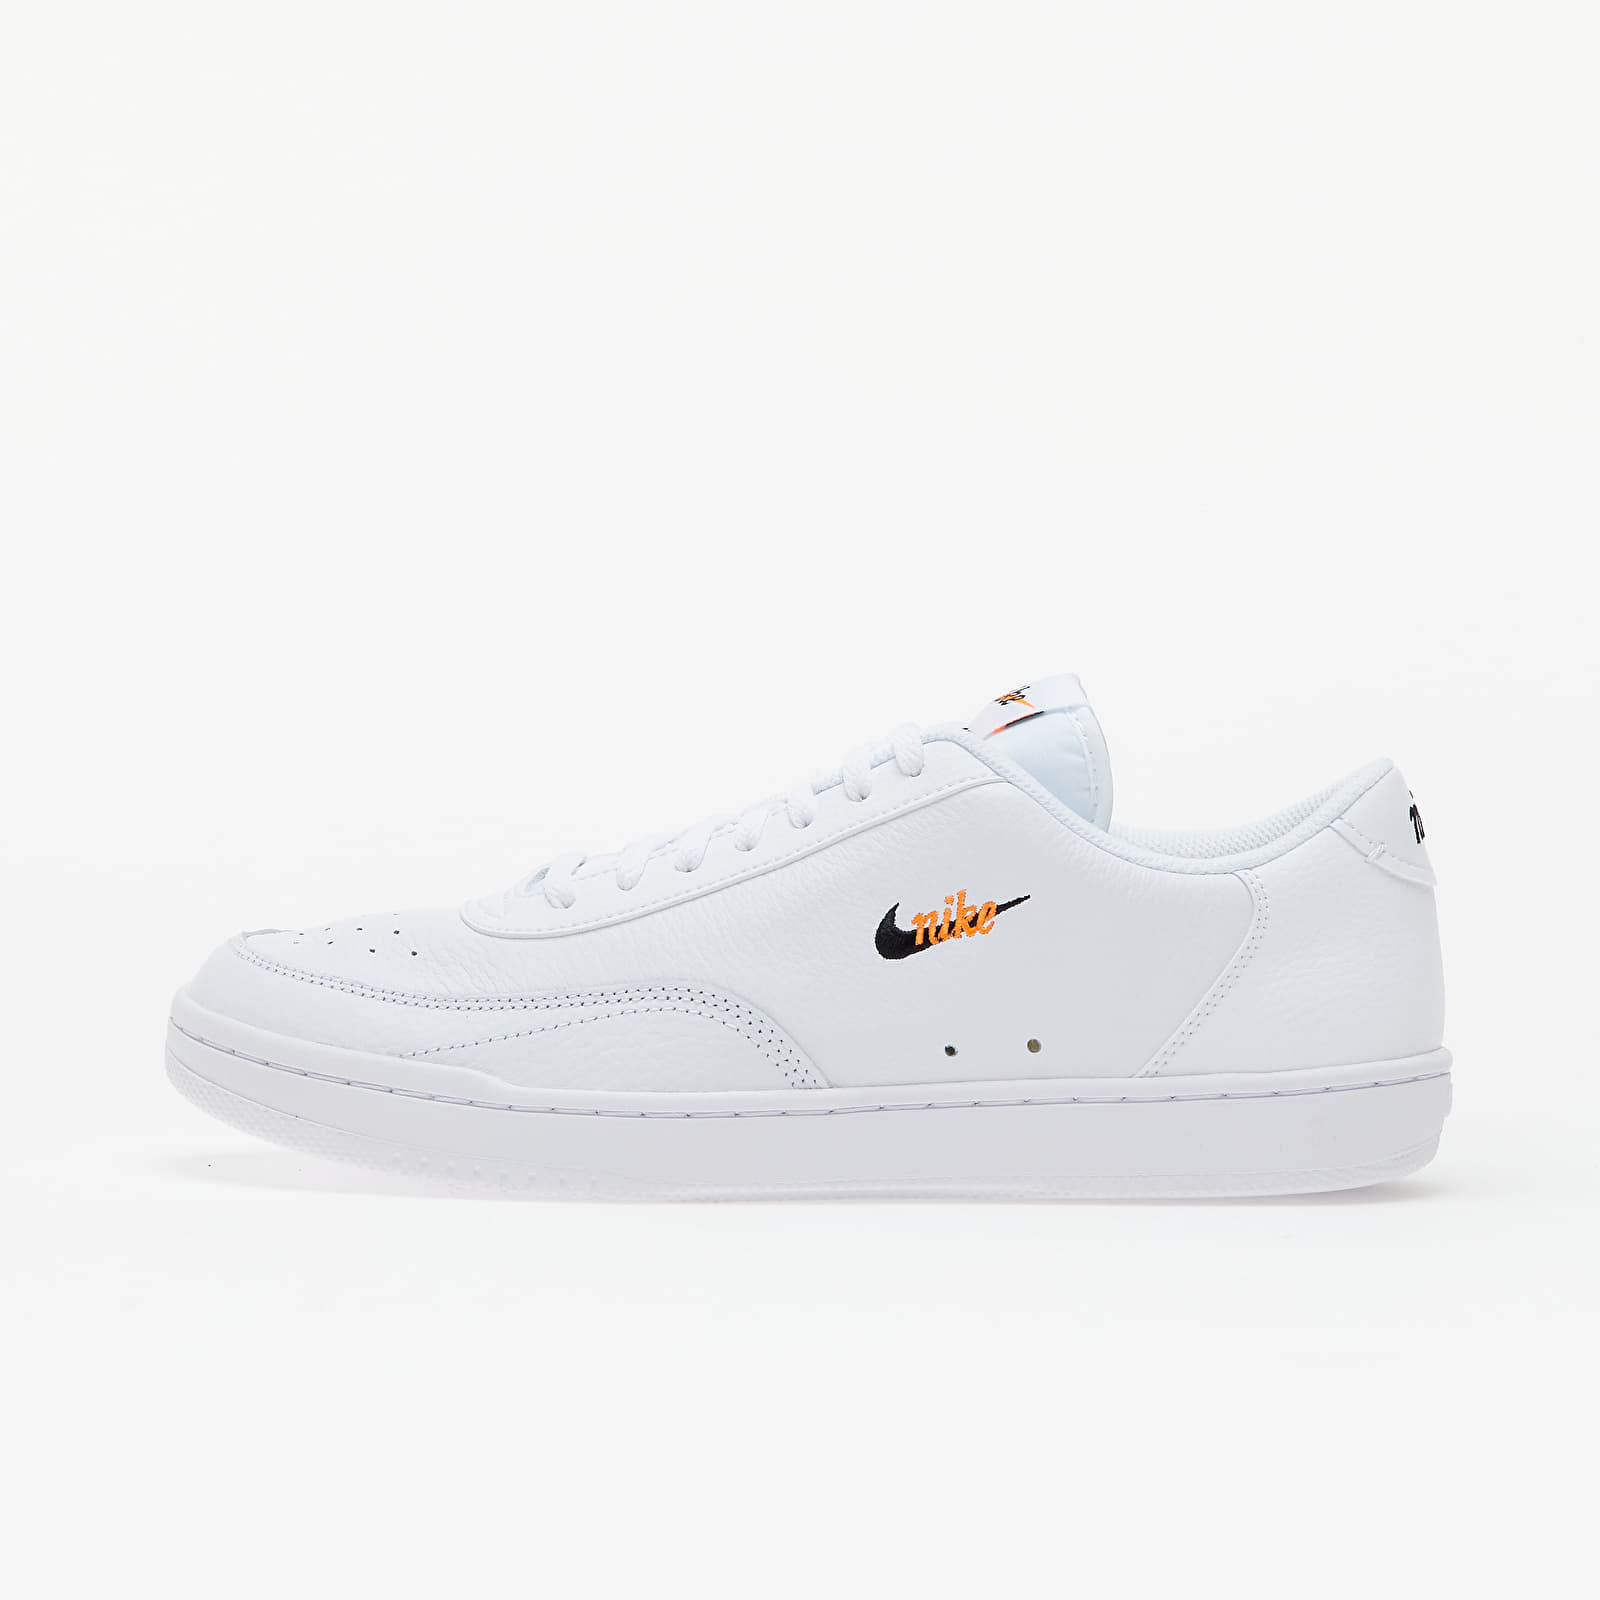 Nike Court Vintage Premium White/ Black-Total Orange EUR 40.5